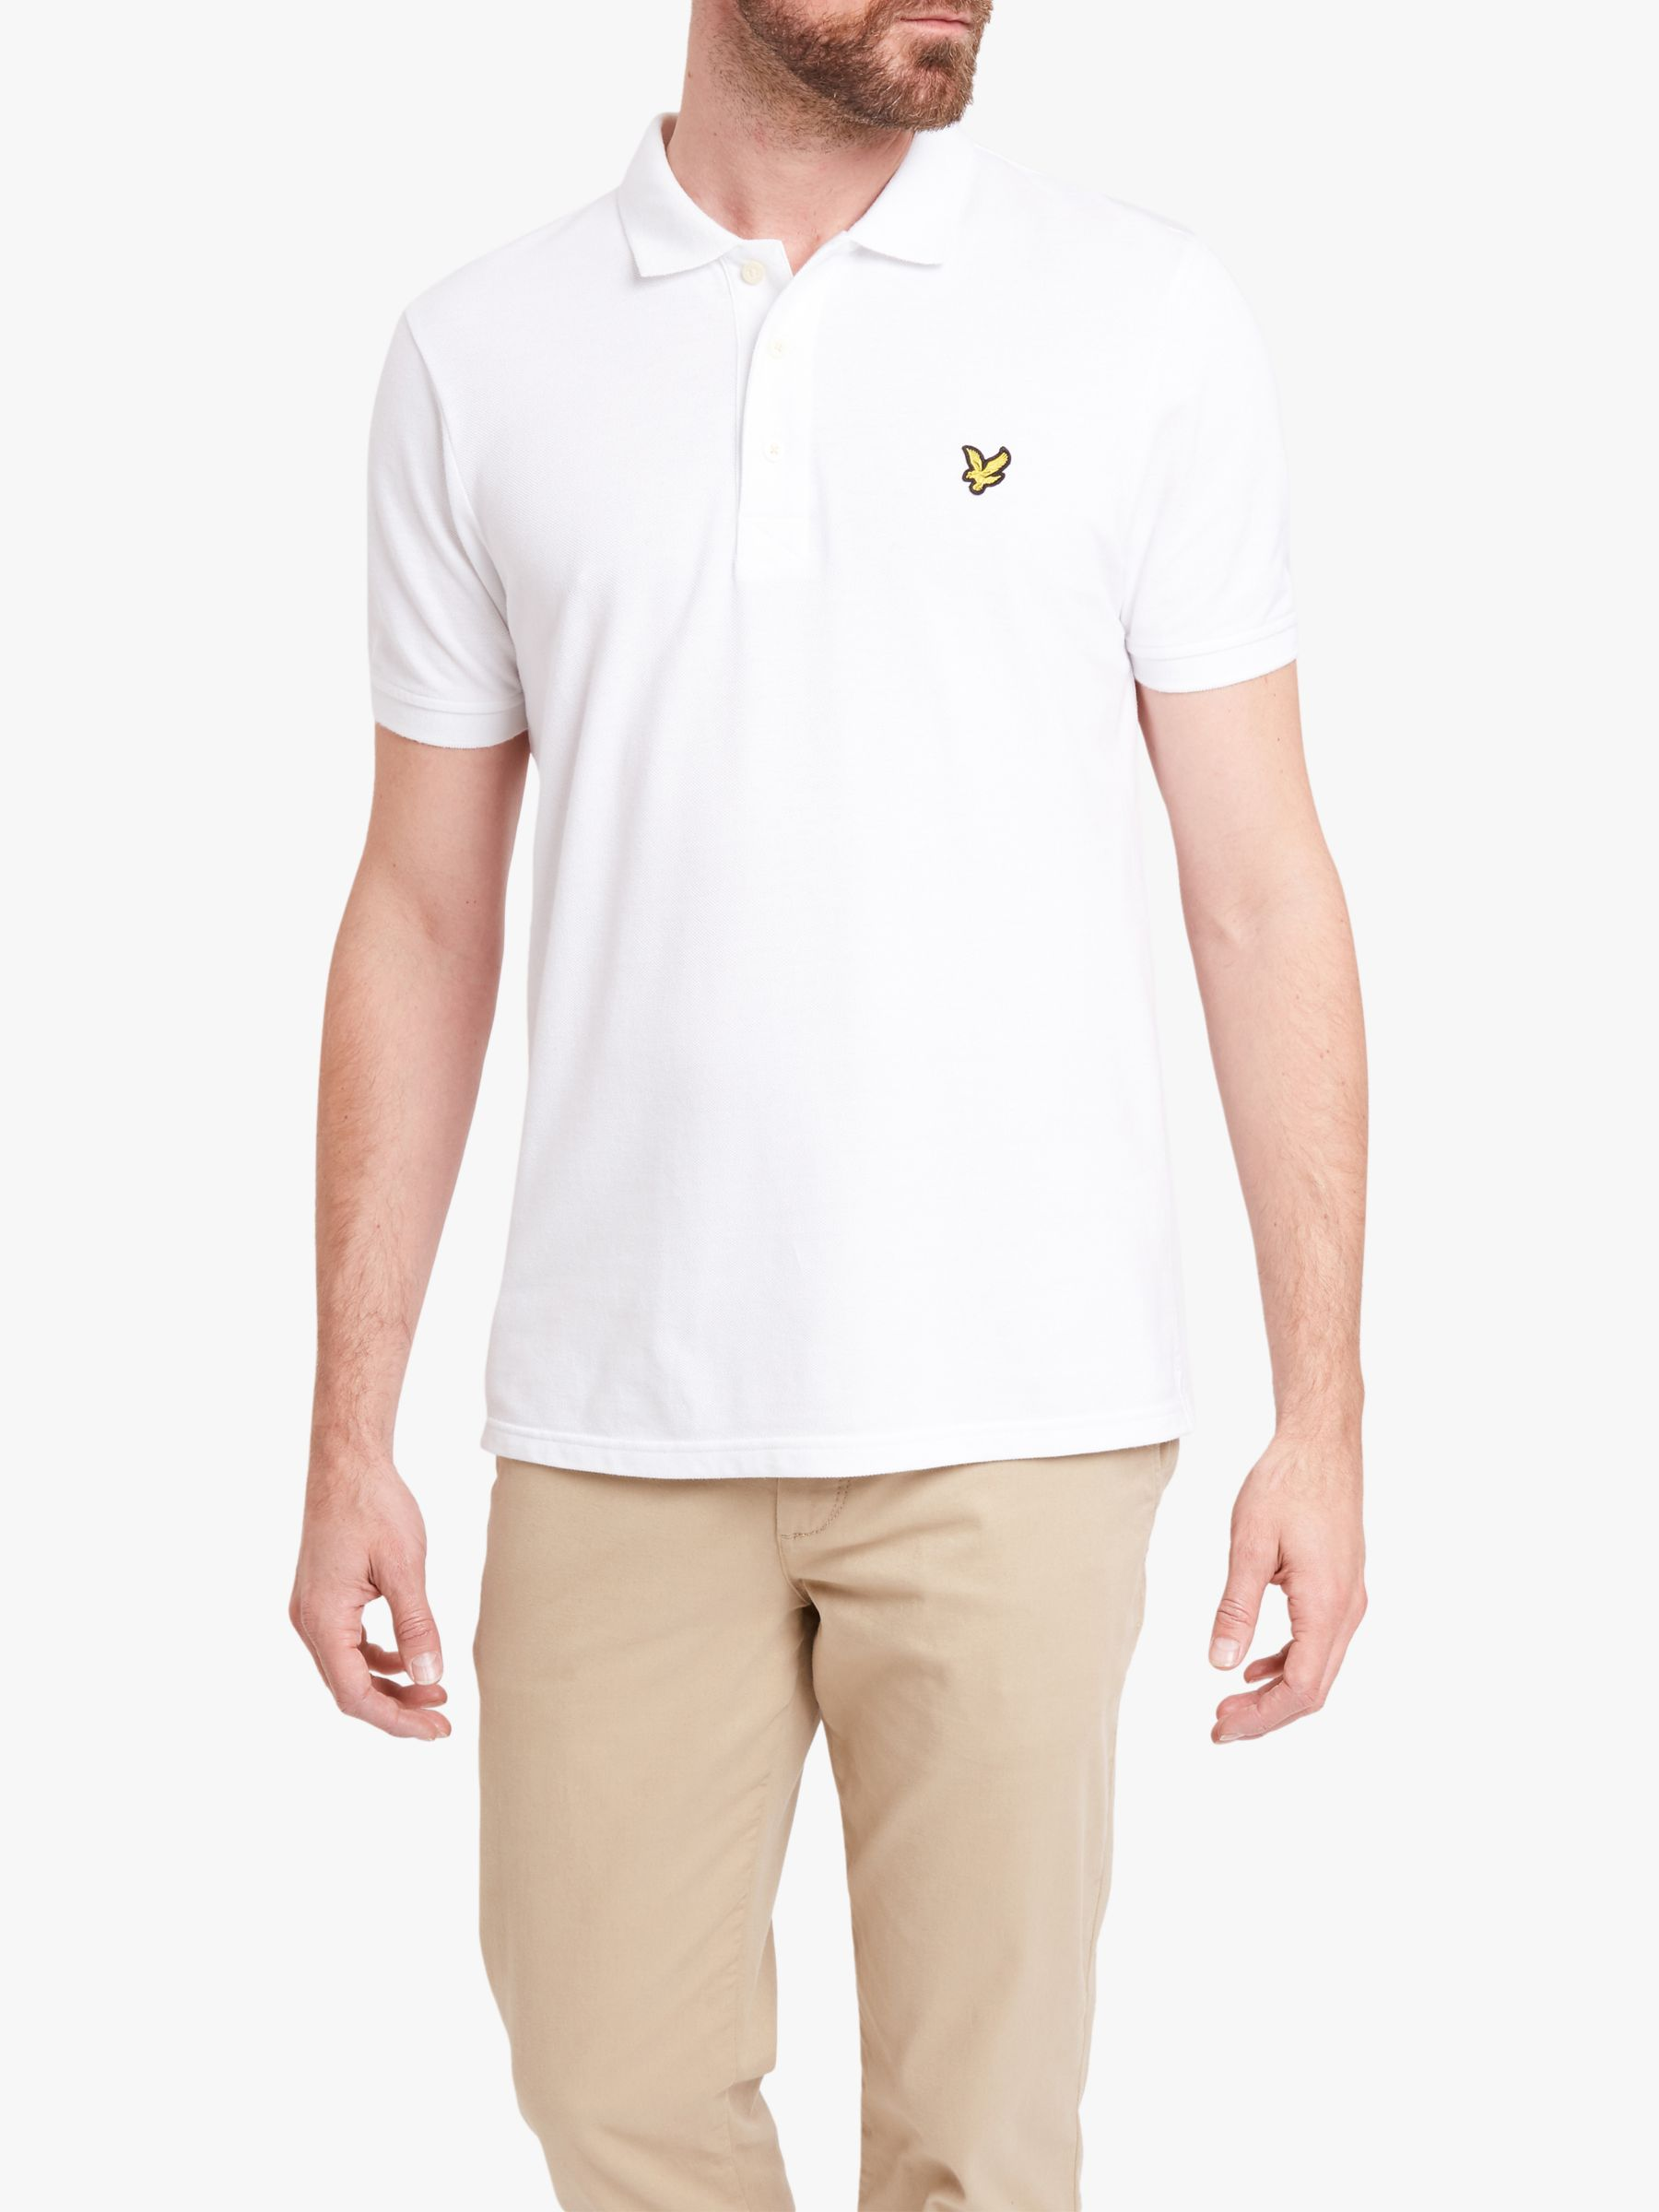 Lyle & Scott Lyle & Scott Plain Pique Polo Shirt